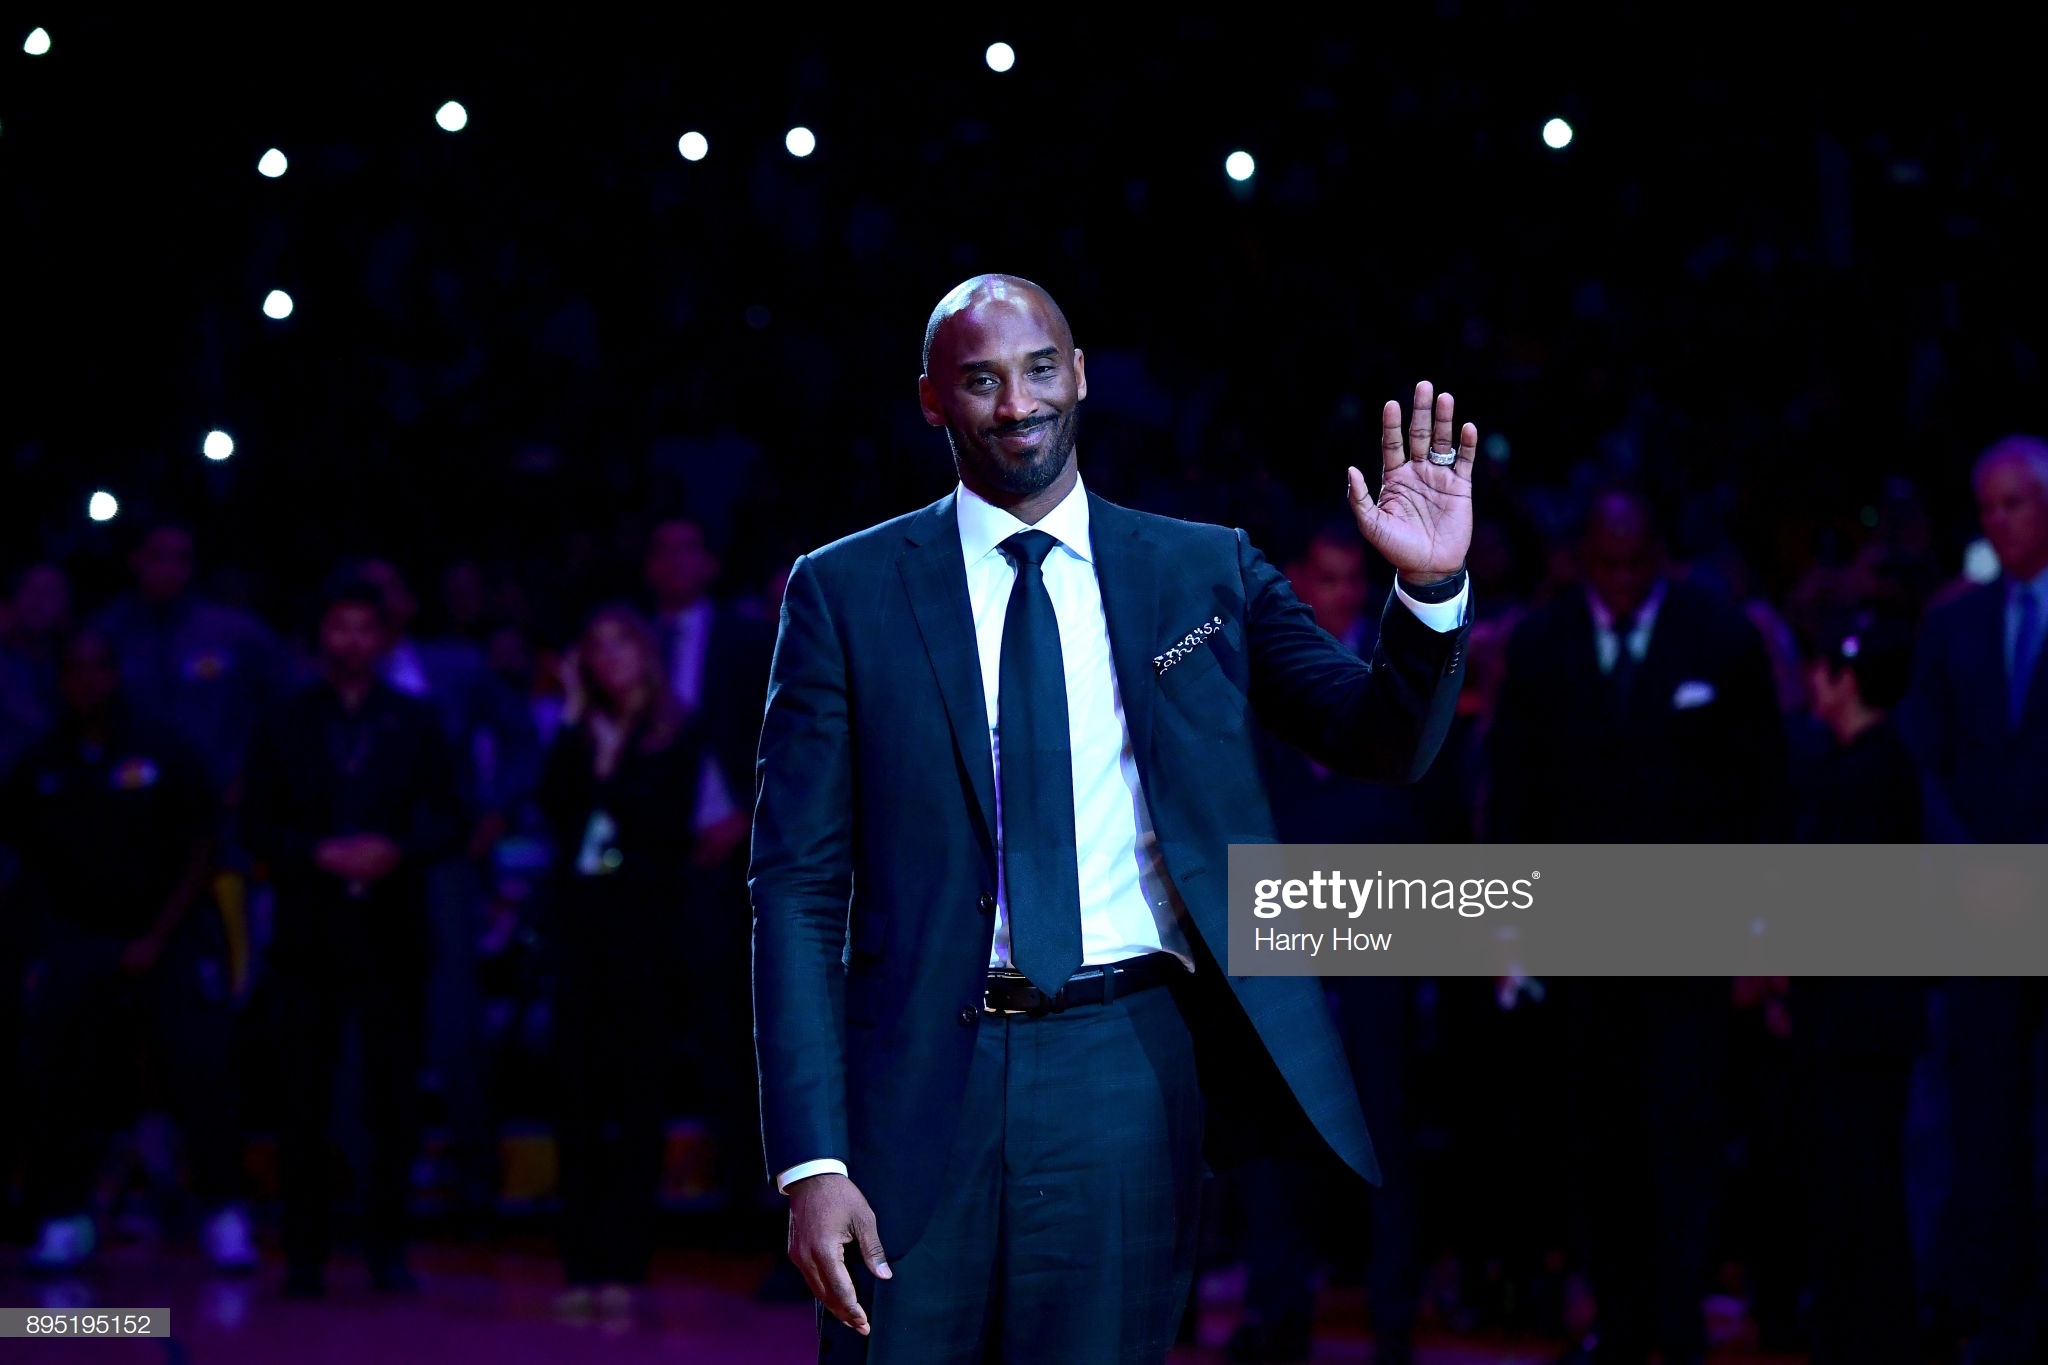 LOS ANGELES, CA - DECEMBER 18:  Kobe Bryant smiles at halftime as both his #8 and #24 Los Angeles Lakers jerseys are retired at Staples Center on December 18, 2017 in Los Angeles, California. NOTE TO USER: User expressly acknowledges and agrees that, by downloading and or using this photograph, User is consenting to the terms and conditions of the Getty Images License Agreement.  (Photo by Harry How/Getty Images)